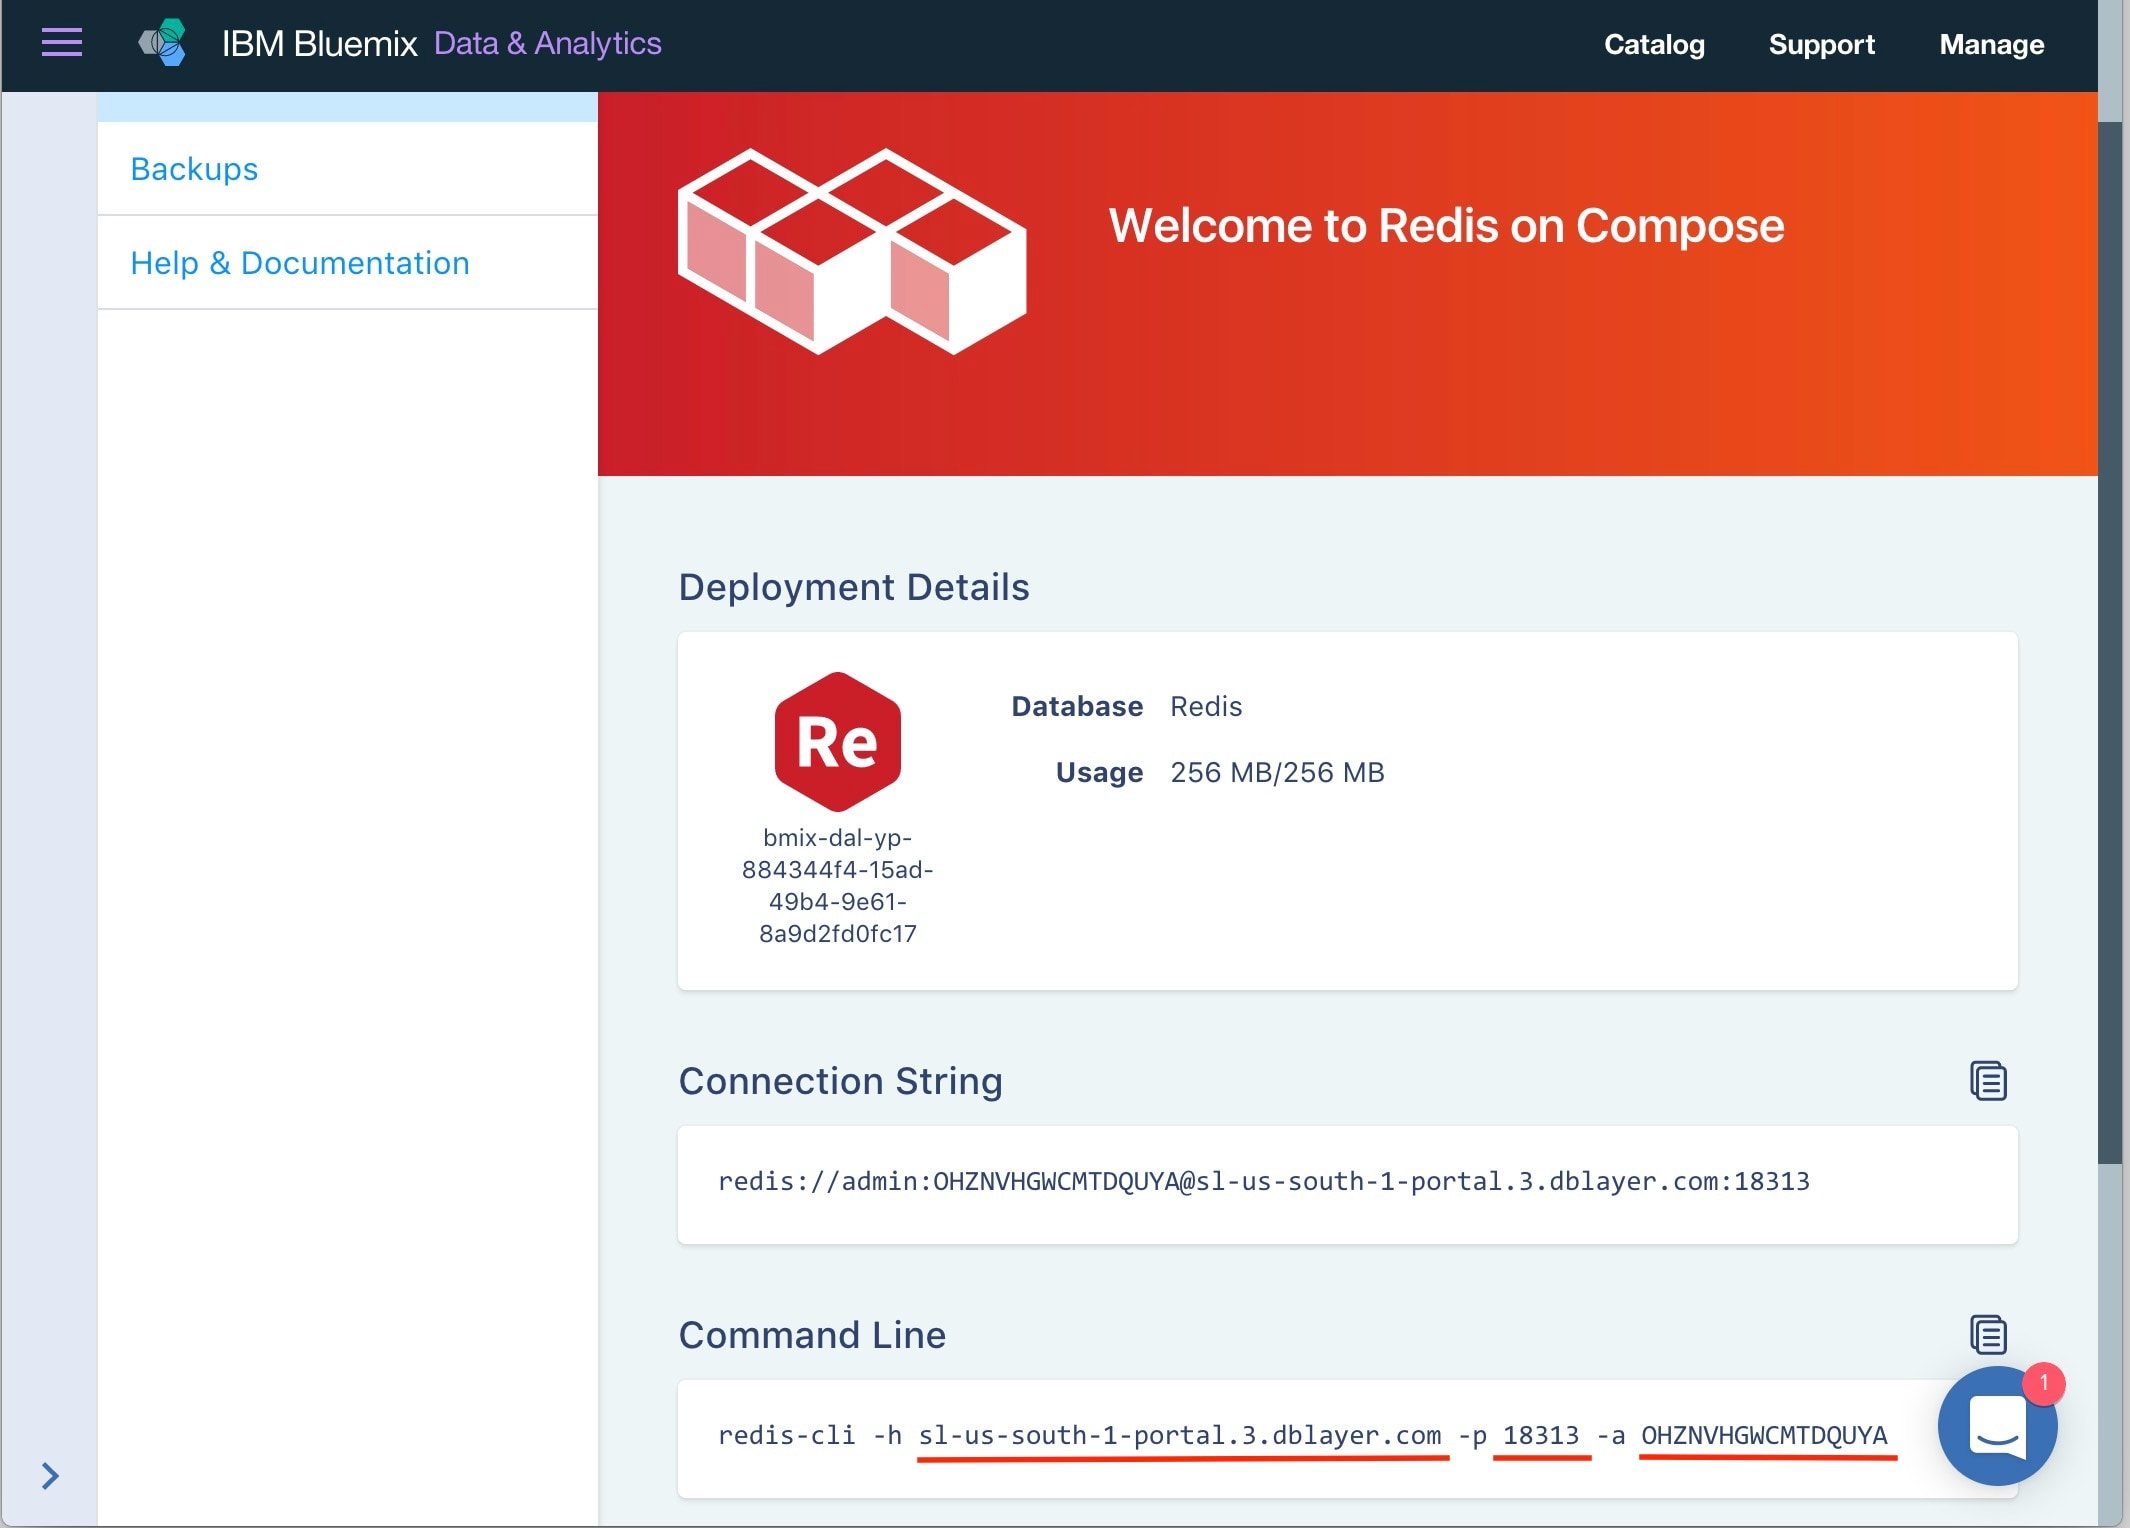 Accessing a Bluemix Redis Service from a Java Spring Boot